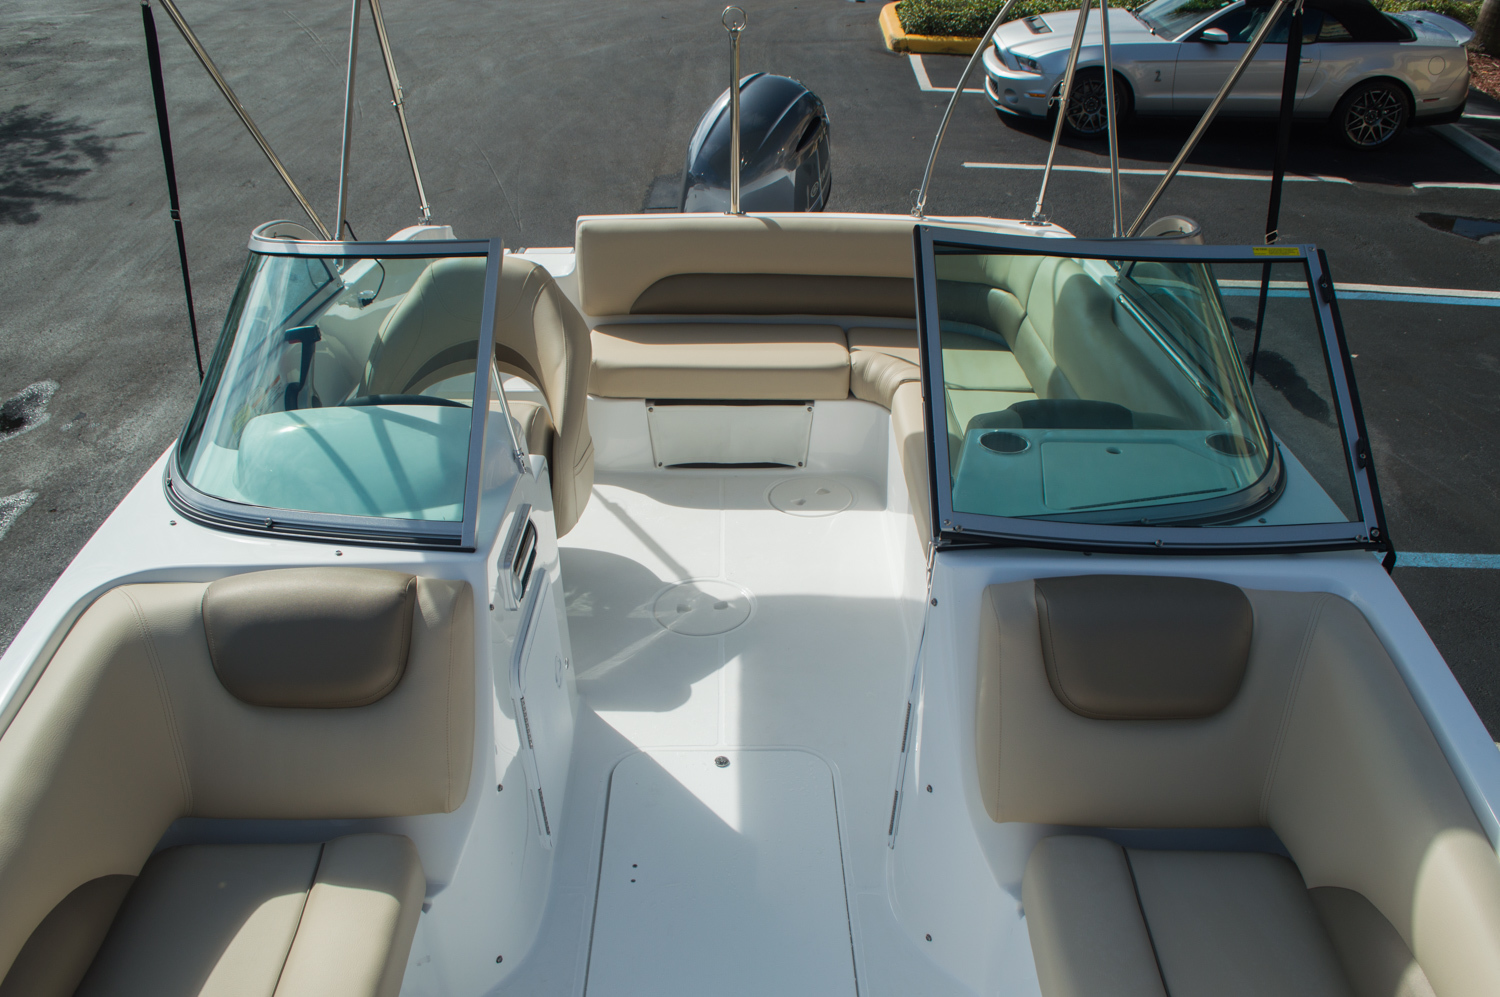 Thumbnail 20 for New 2016 Hurricane SunDeck SD 187 OB boat for sale in West Palm Beach, FL